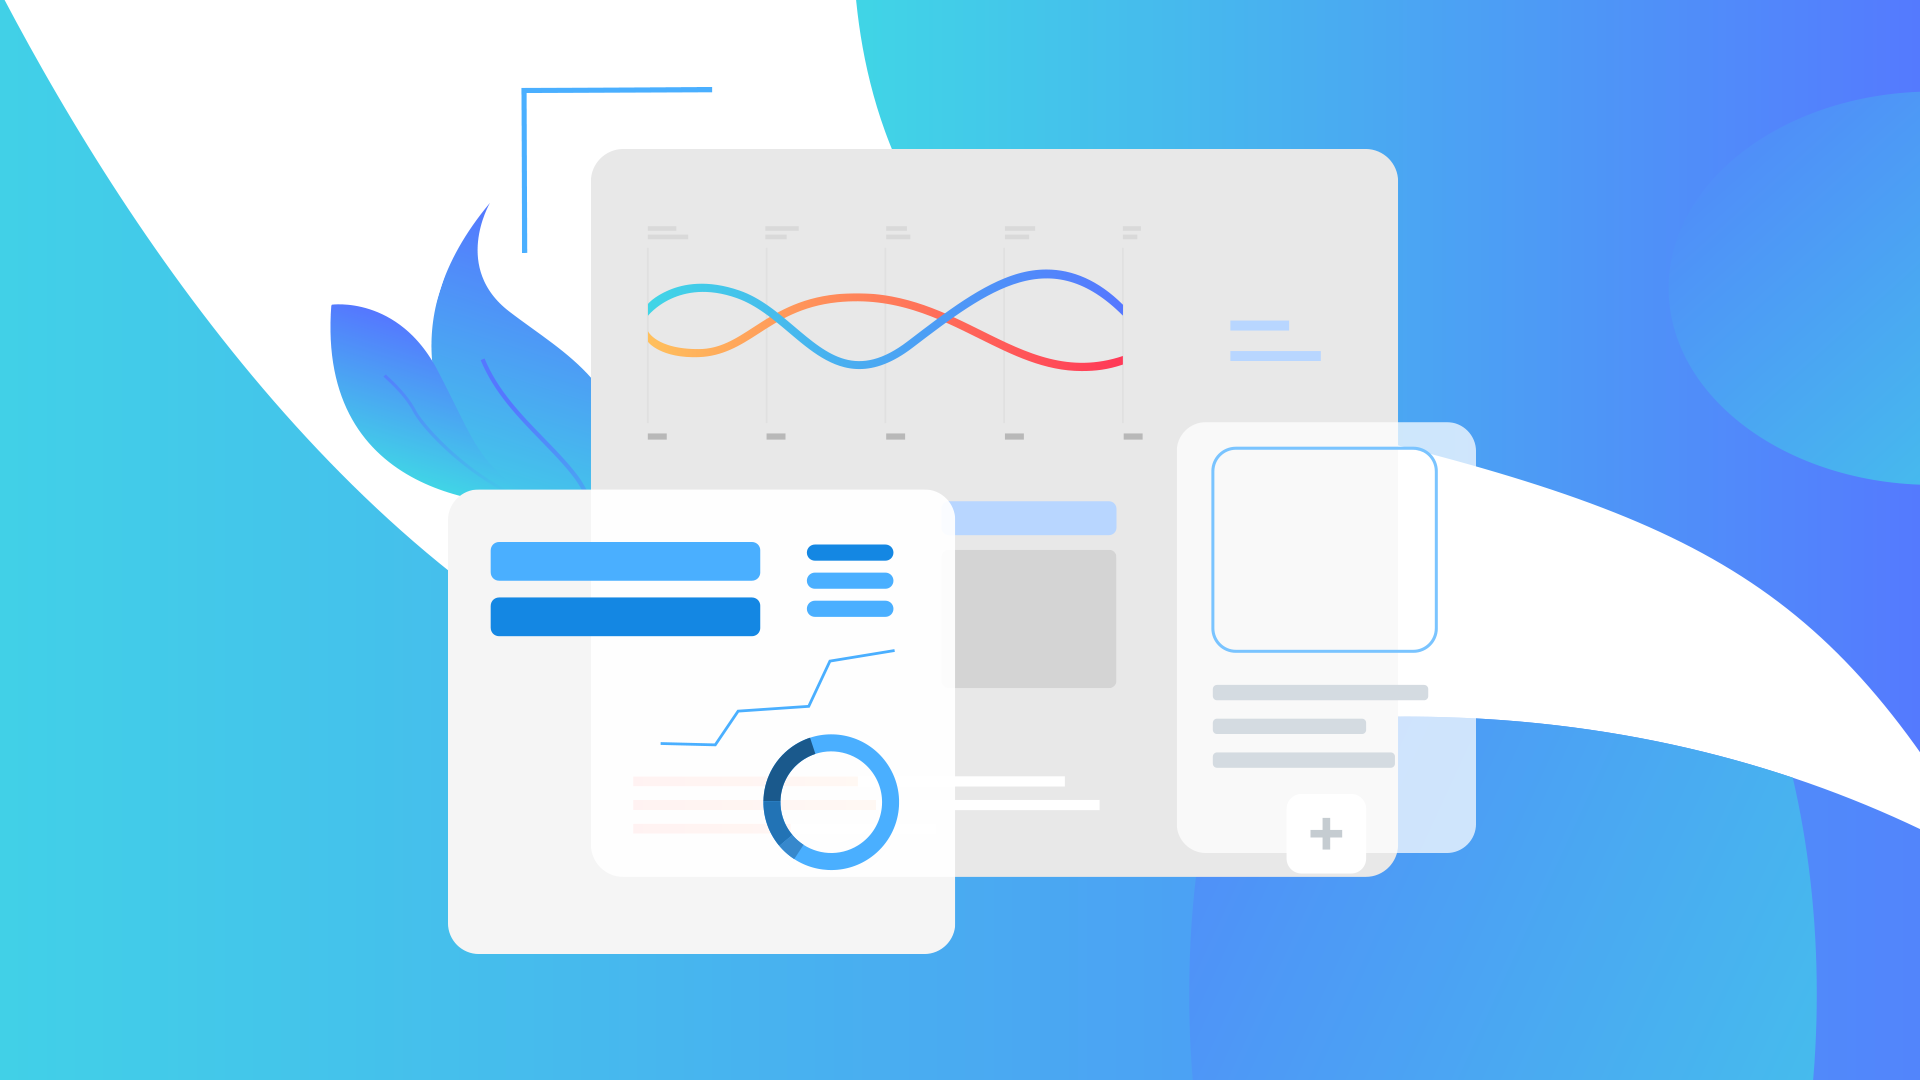 Quantitative app analytics software is responsible for numeric information—data about total user number, average session length, user daily/monthly activity and other directly calculated metrics.